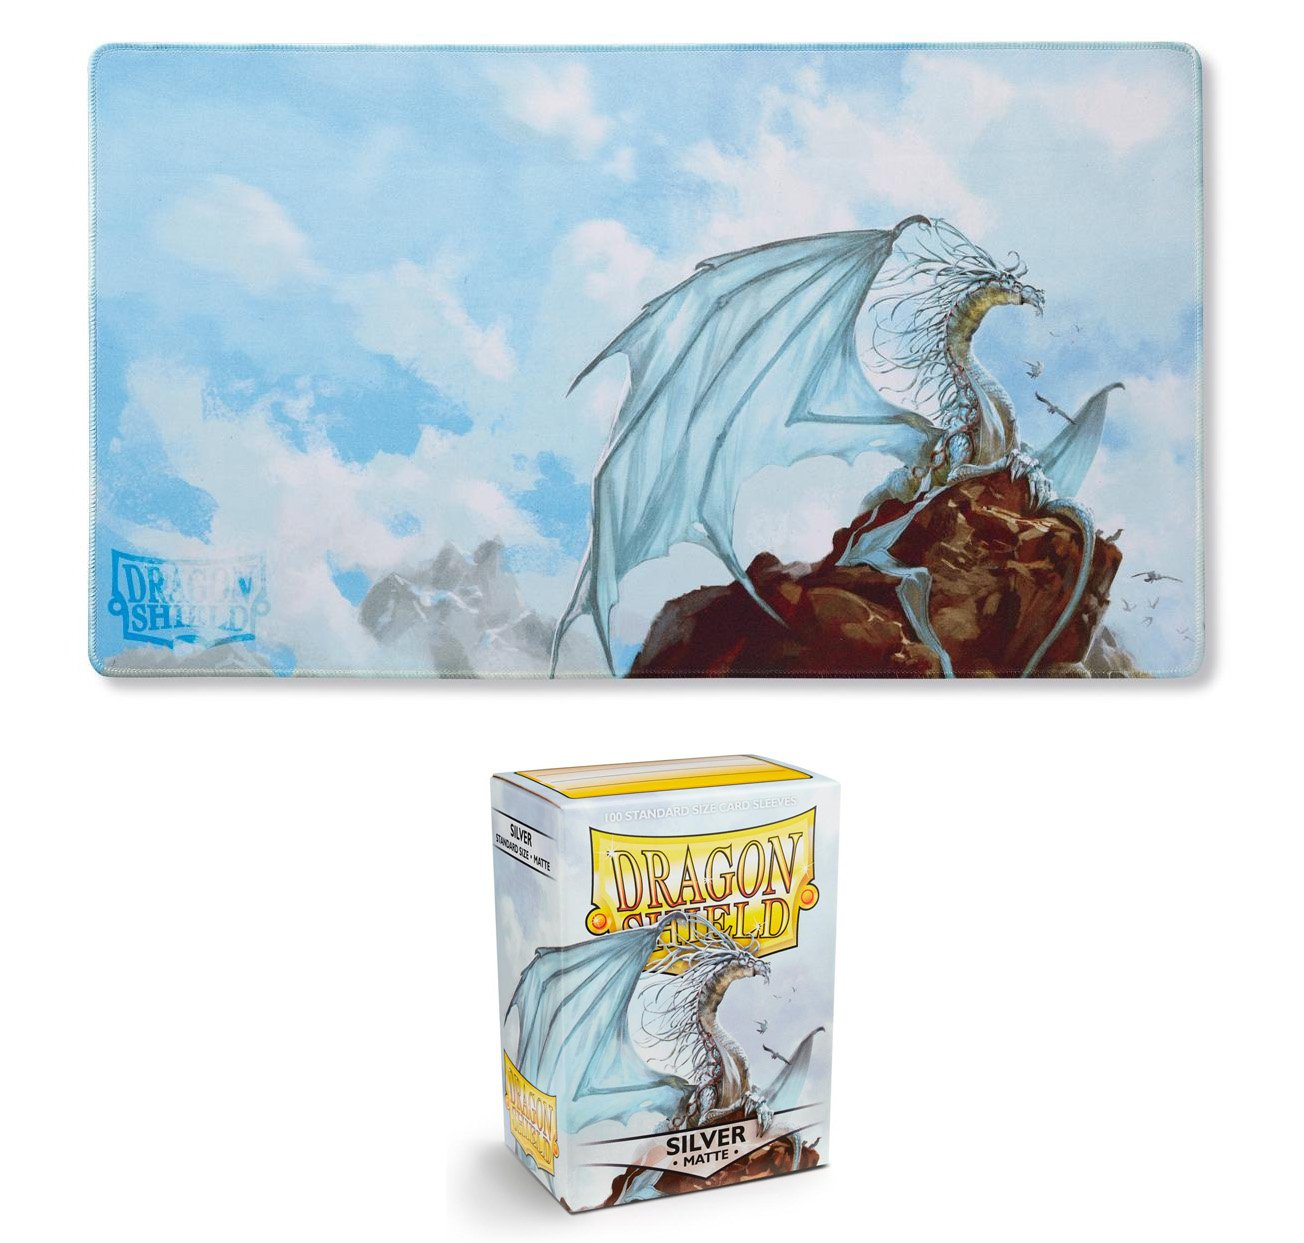 Dragon Shield Bundle: Silver Caelum Limited Edition Playmat + Matte Silver Caelum 100 Count Standard Size Card Sleeves